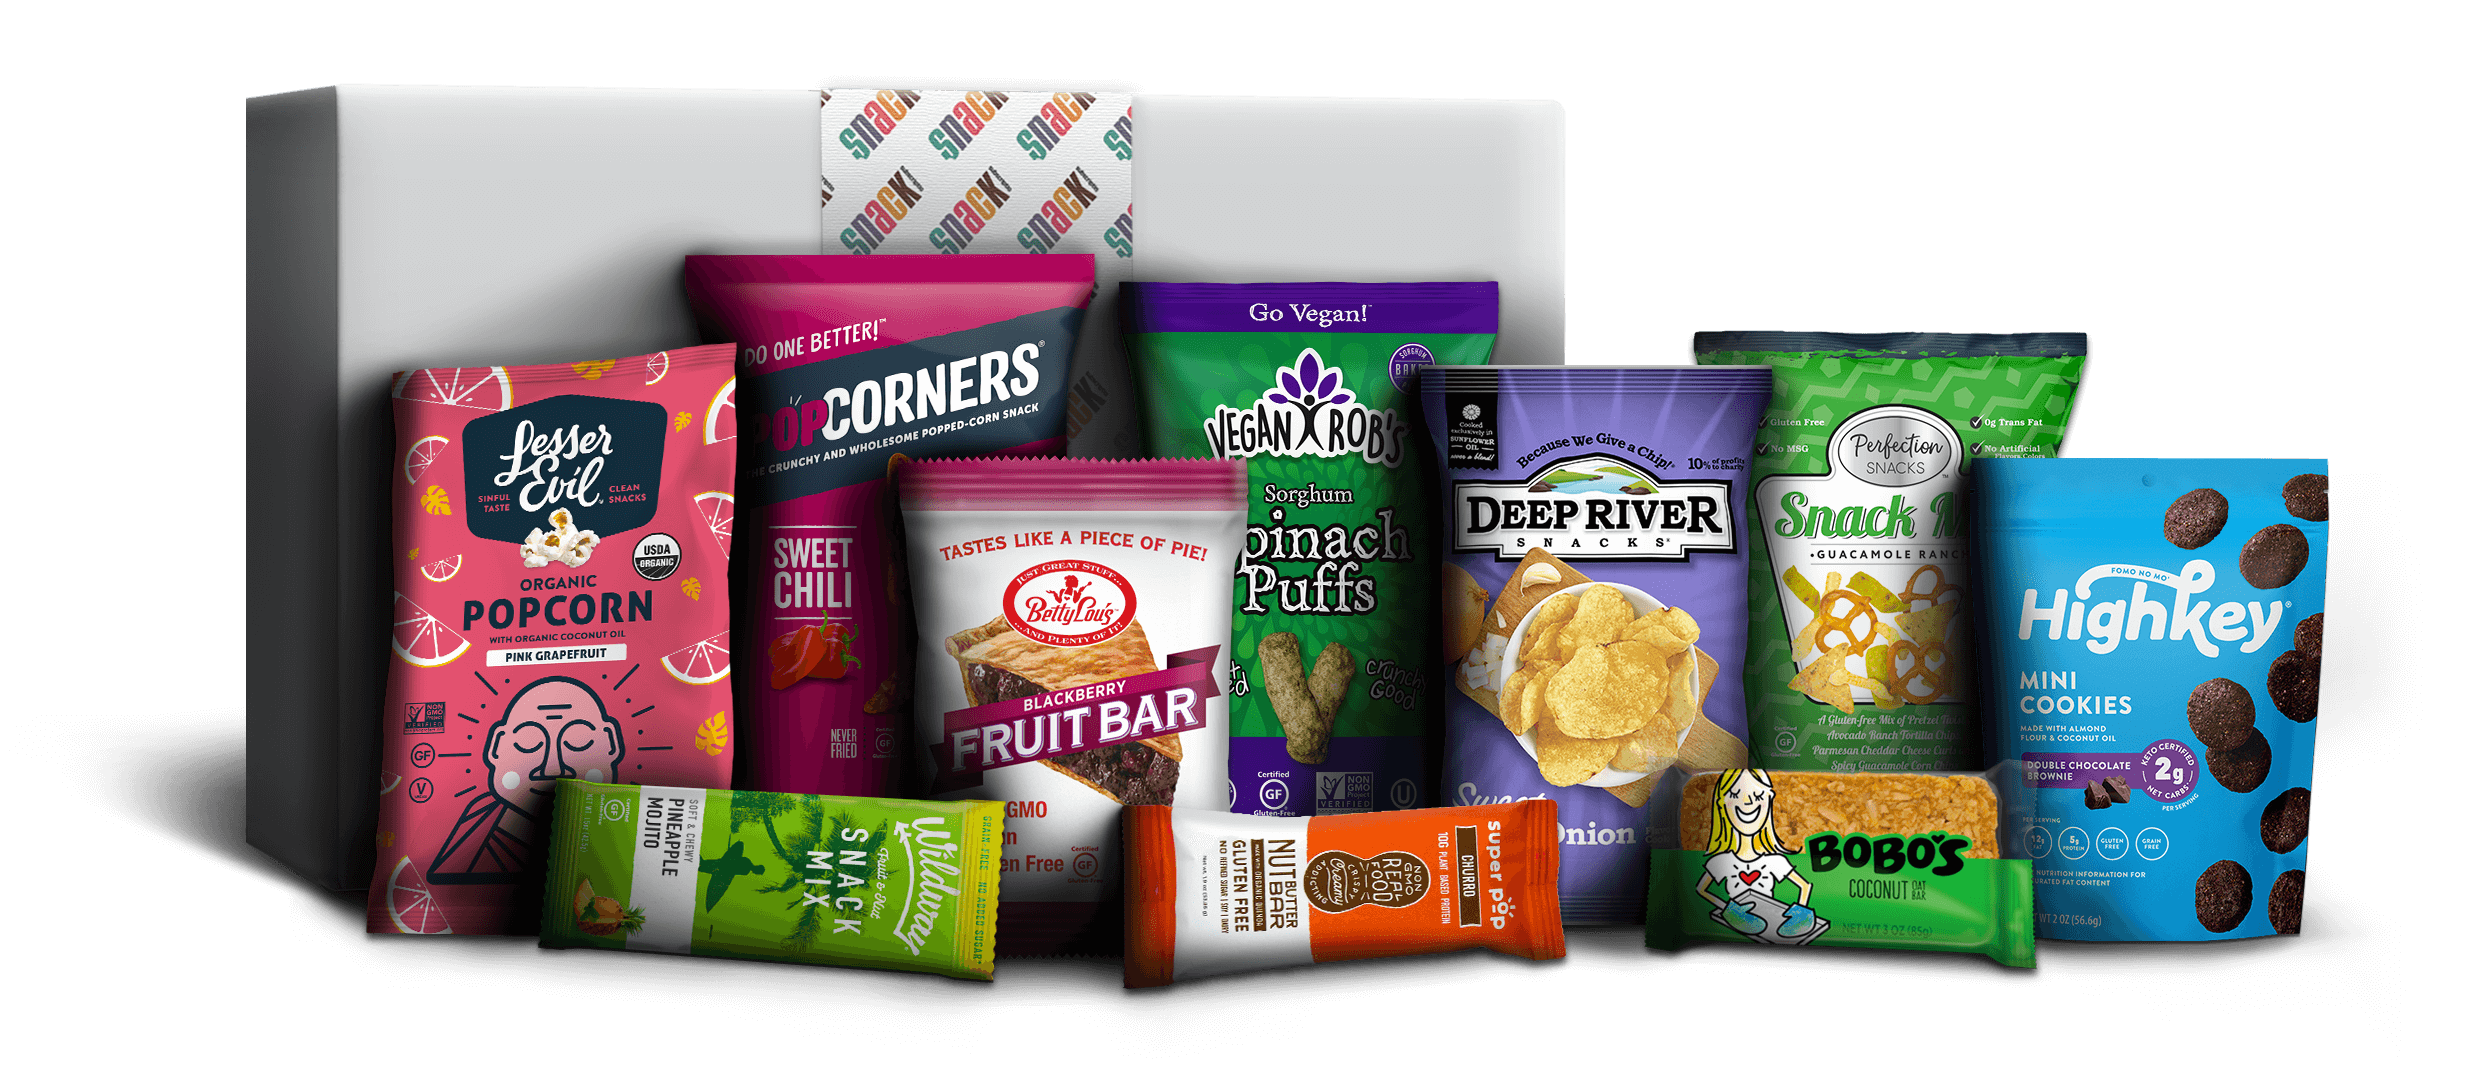 Image of various brightly colored snack packages in red, green, orange, lavender and pink placed in the forefront of the subscription product box.